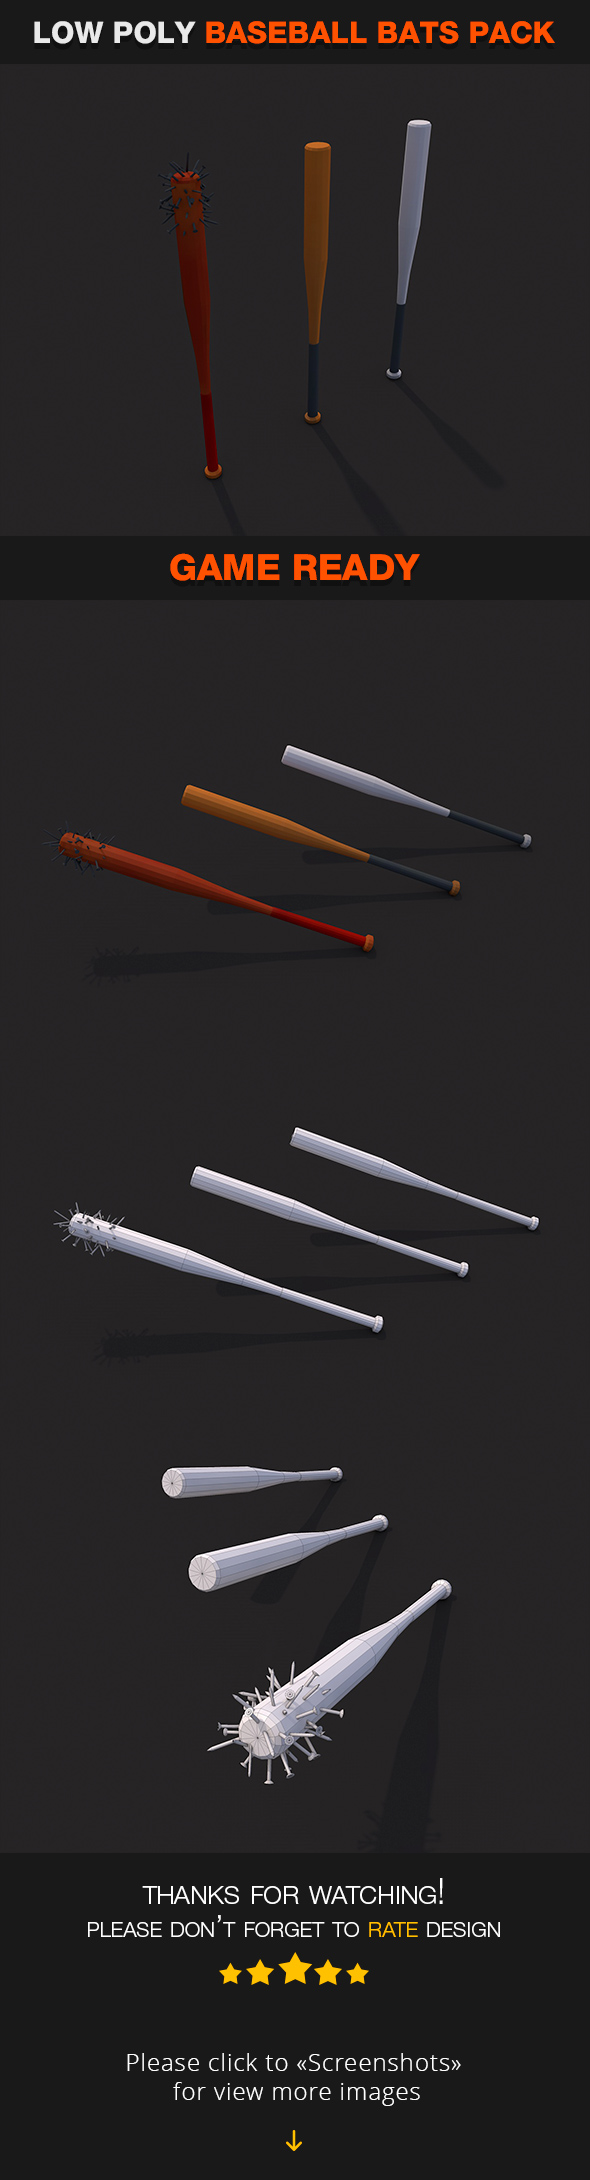 Low Poly Baseball bats - 3DOcean Item for Sale